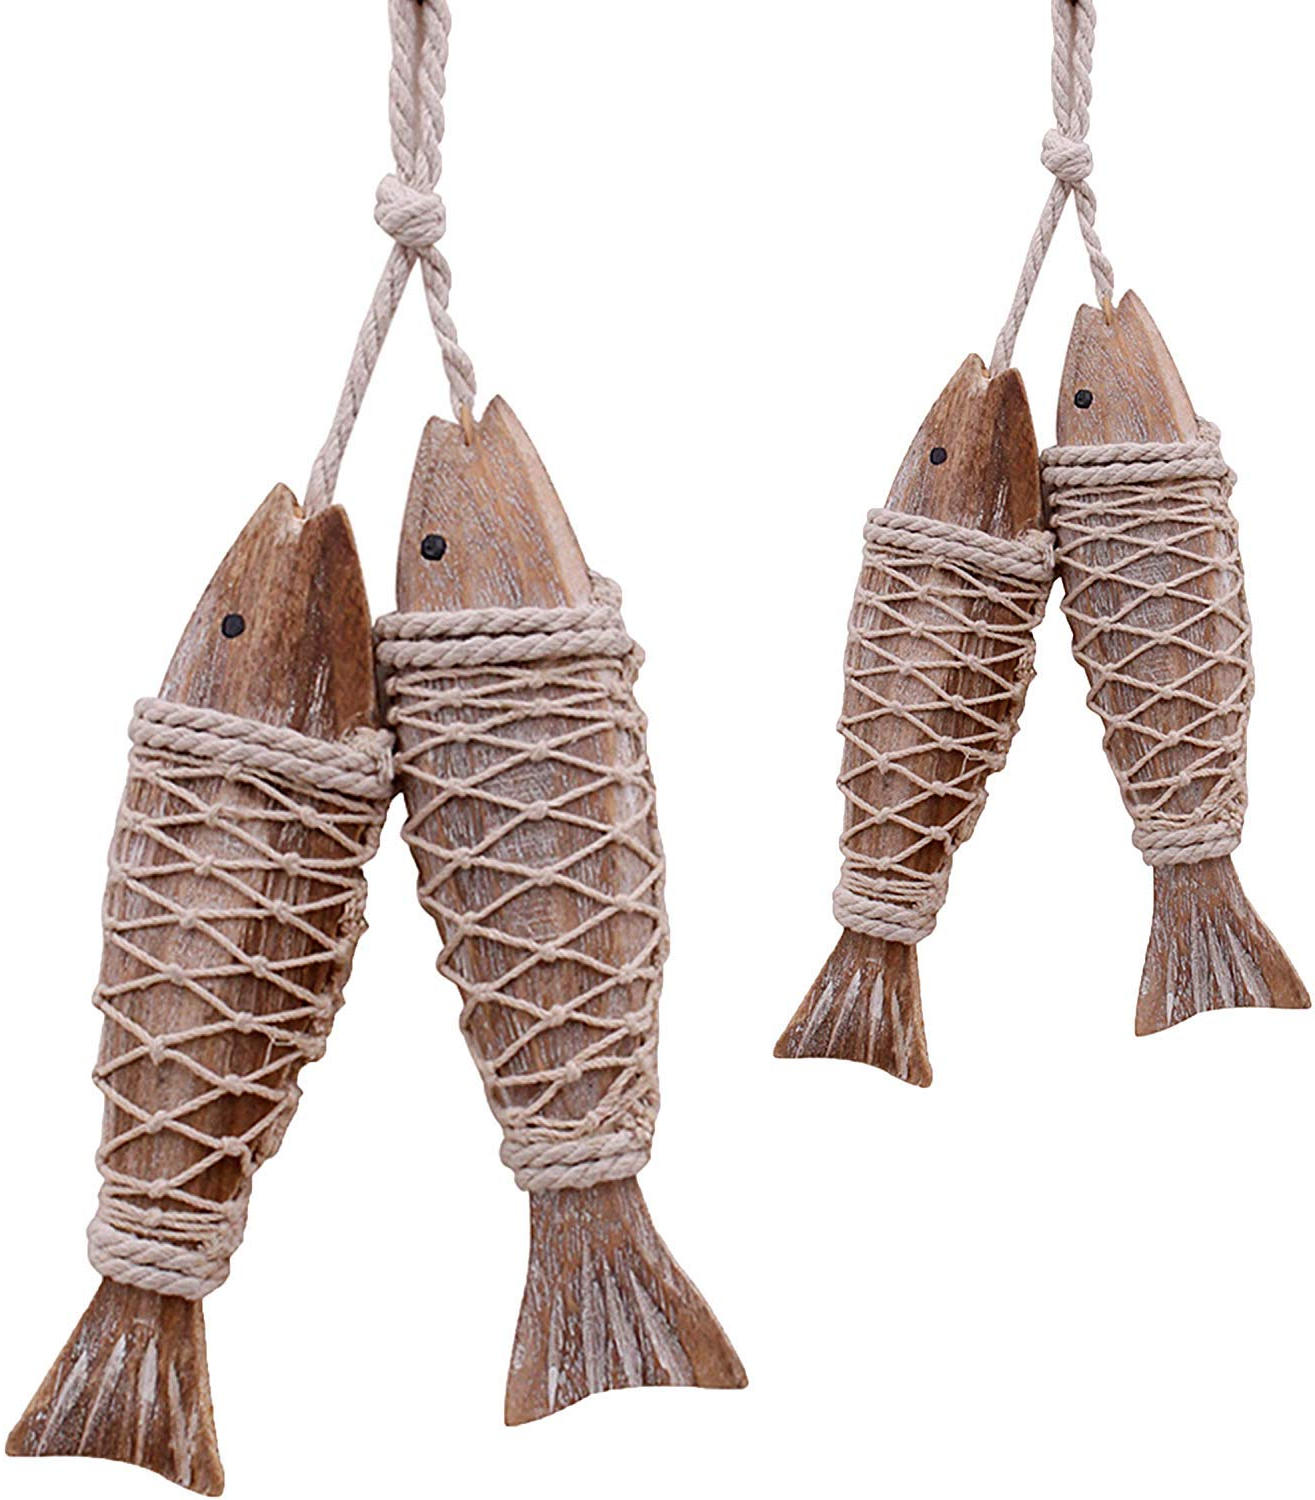 Newest Handcrafted Hanging Fish In Net Wall Décor Regarding Handcrafted Hanging Wooden Fish,set Of 4,nautical Ornaments Antique Home Wall Decor Nautical Gift For Beach Lovers (View 2 of 20)